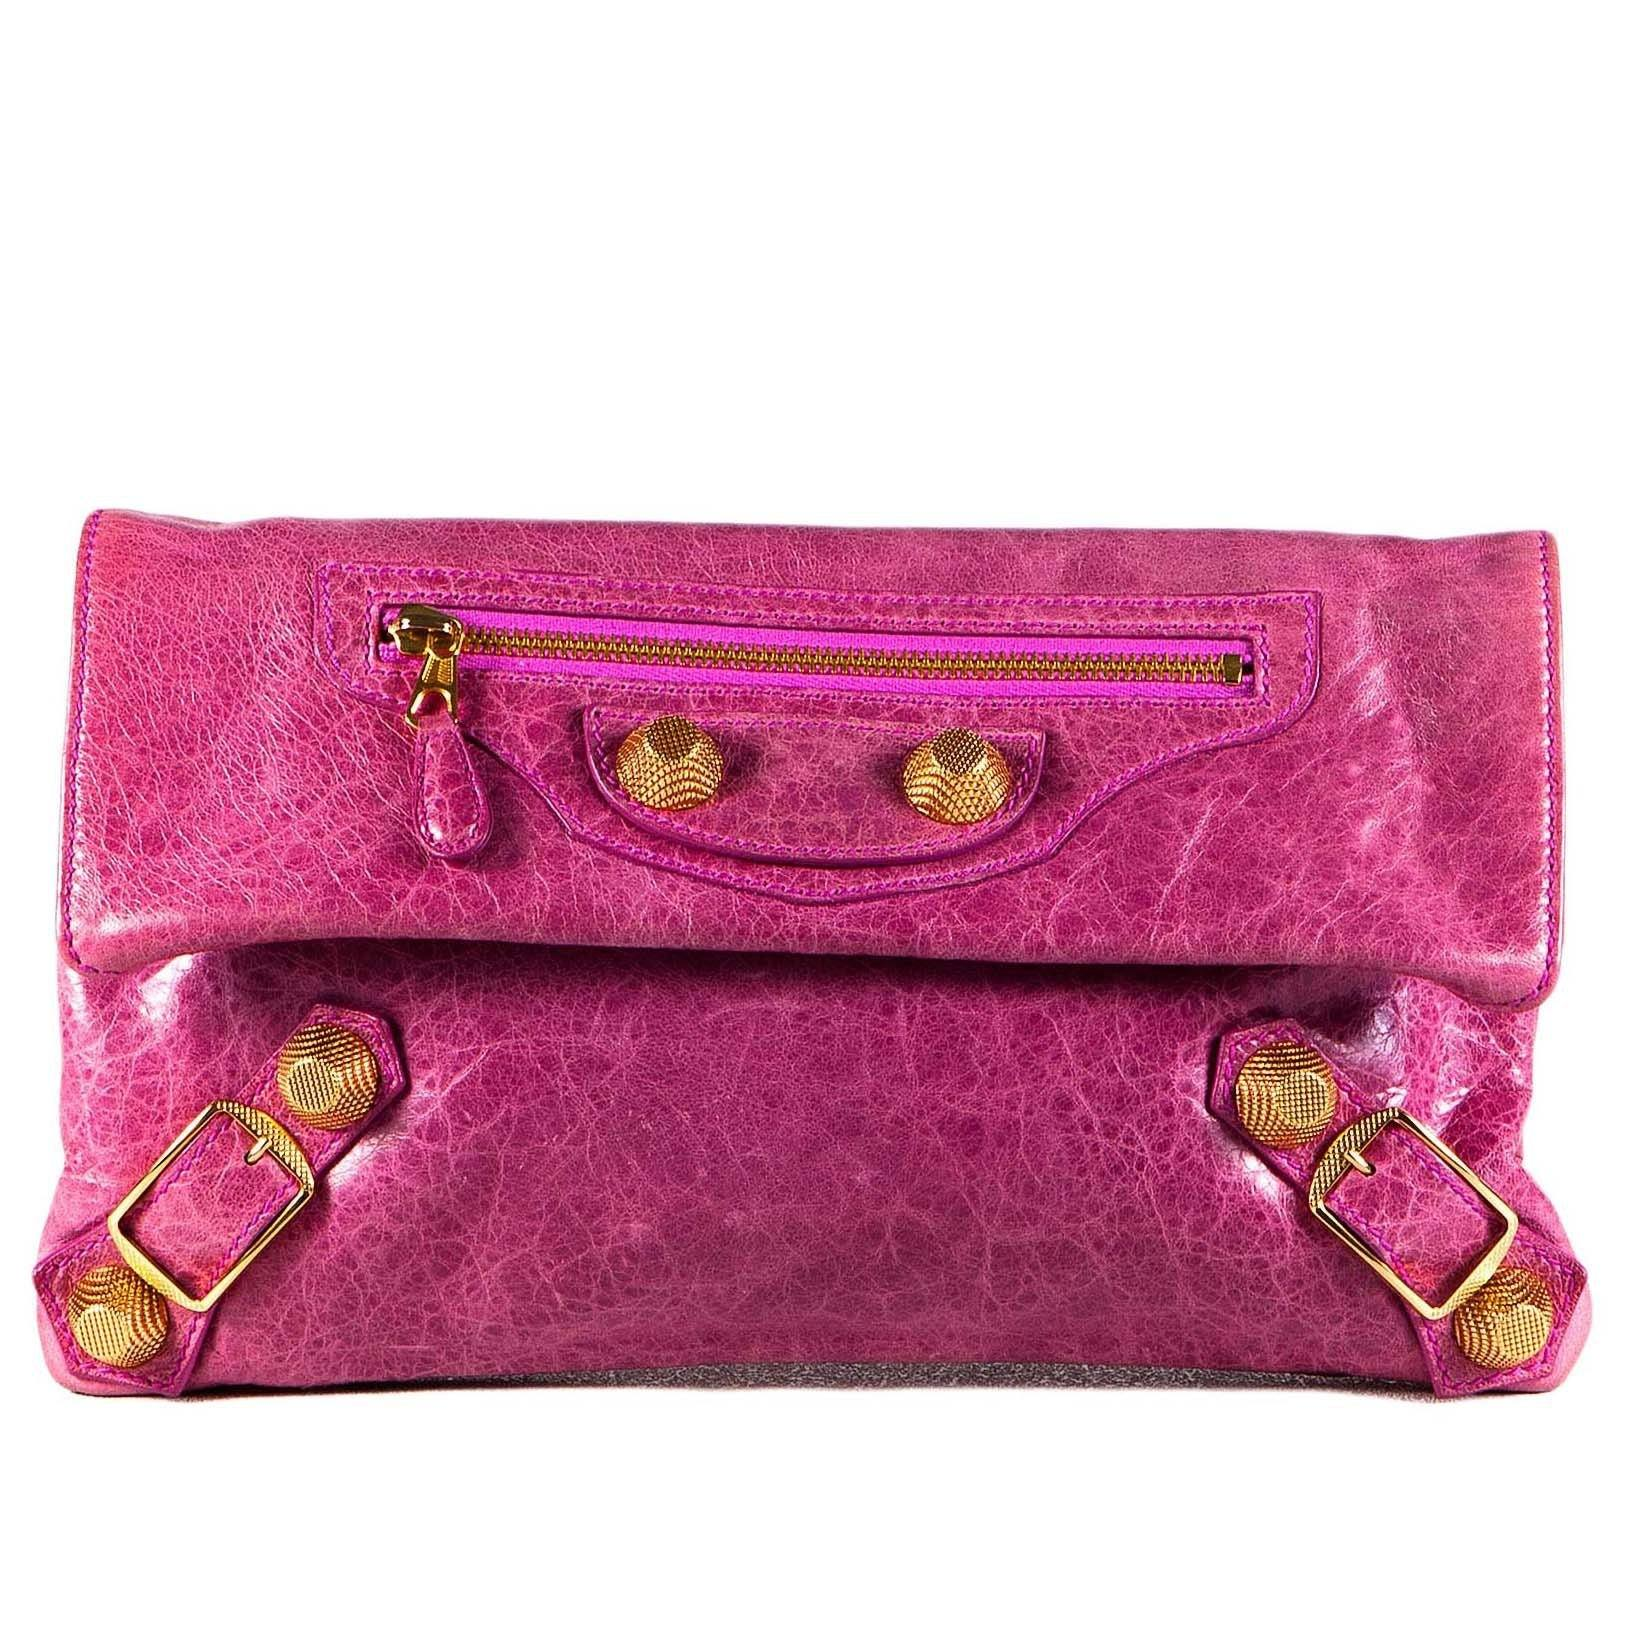 Balenciaga Pink Leather Gold hardware Envelope Clutch